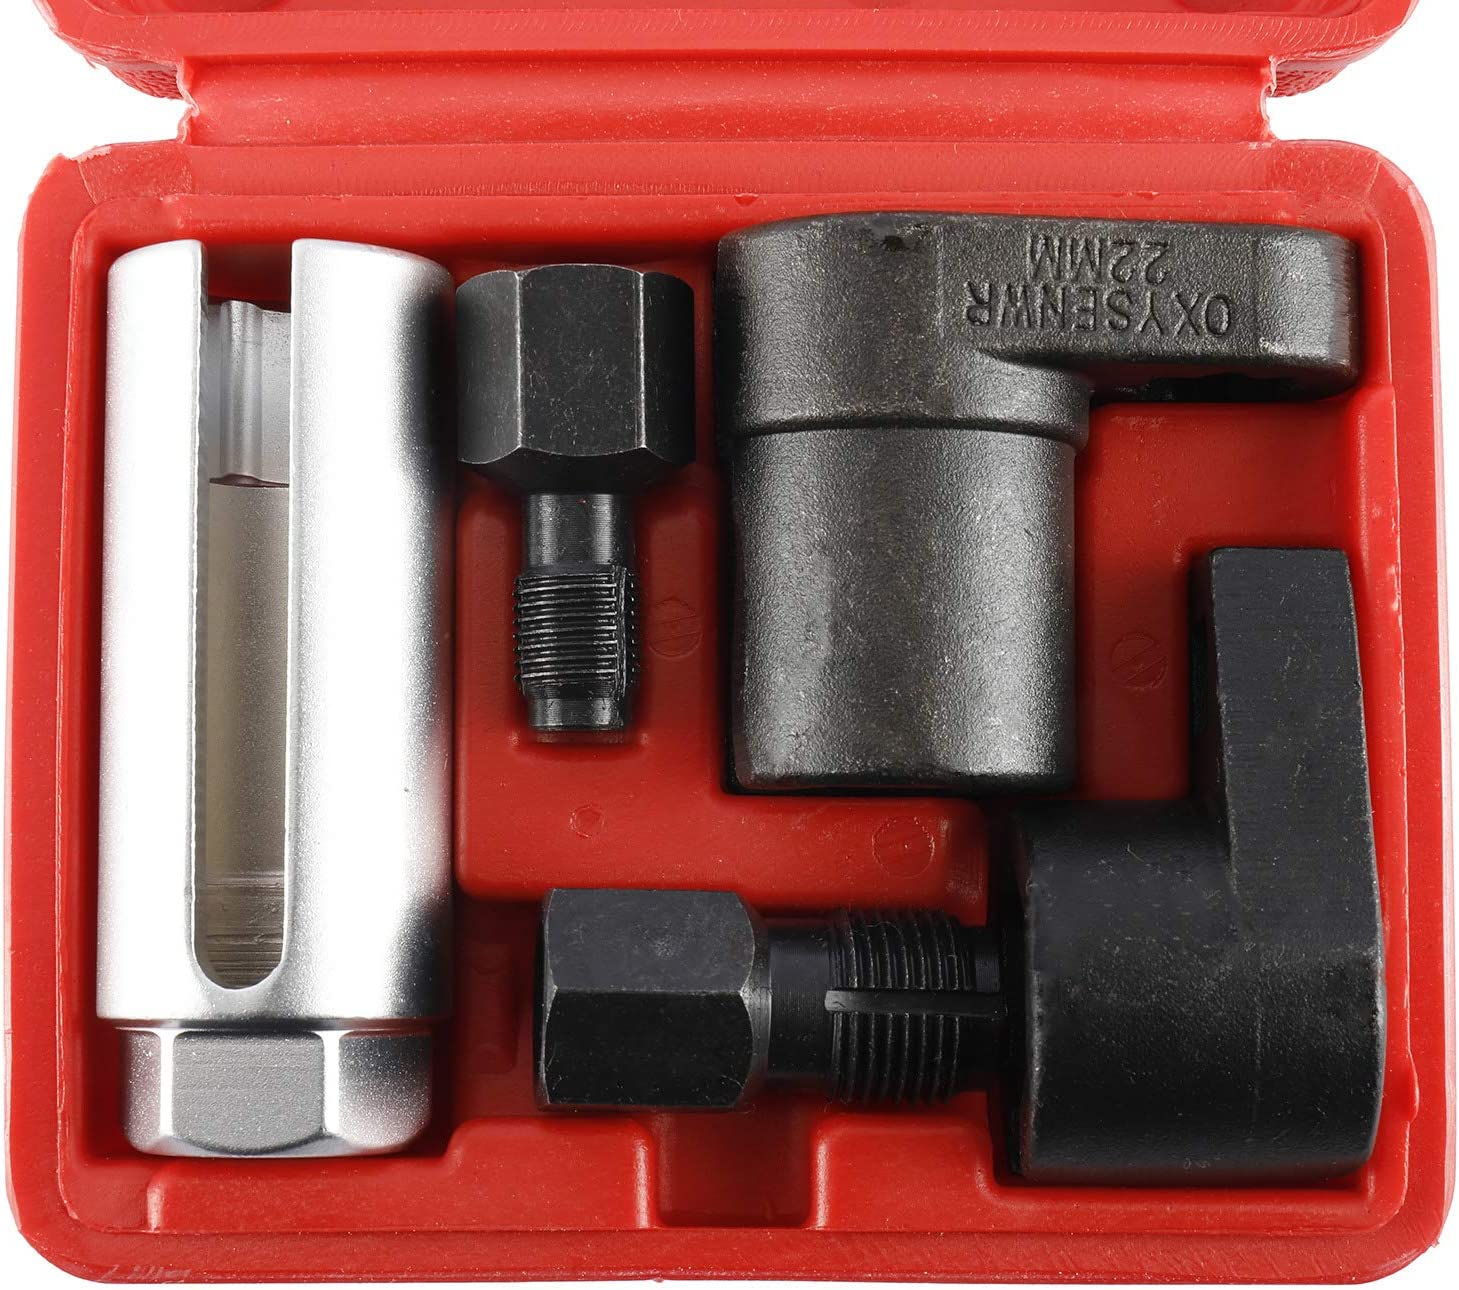 KUNTEC 5 PCS Oxygen Sensor Socket Offset Wrench Remover Tool and Thread Chaser Wrench Set